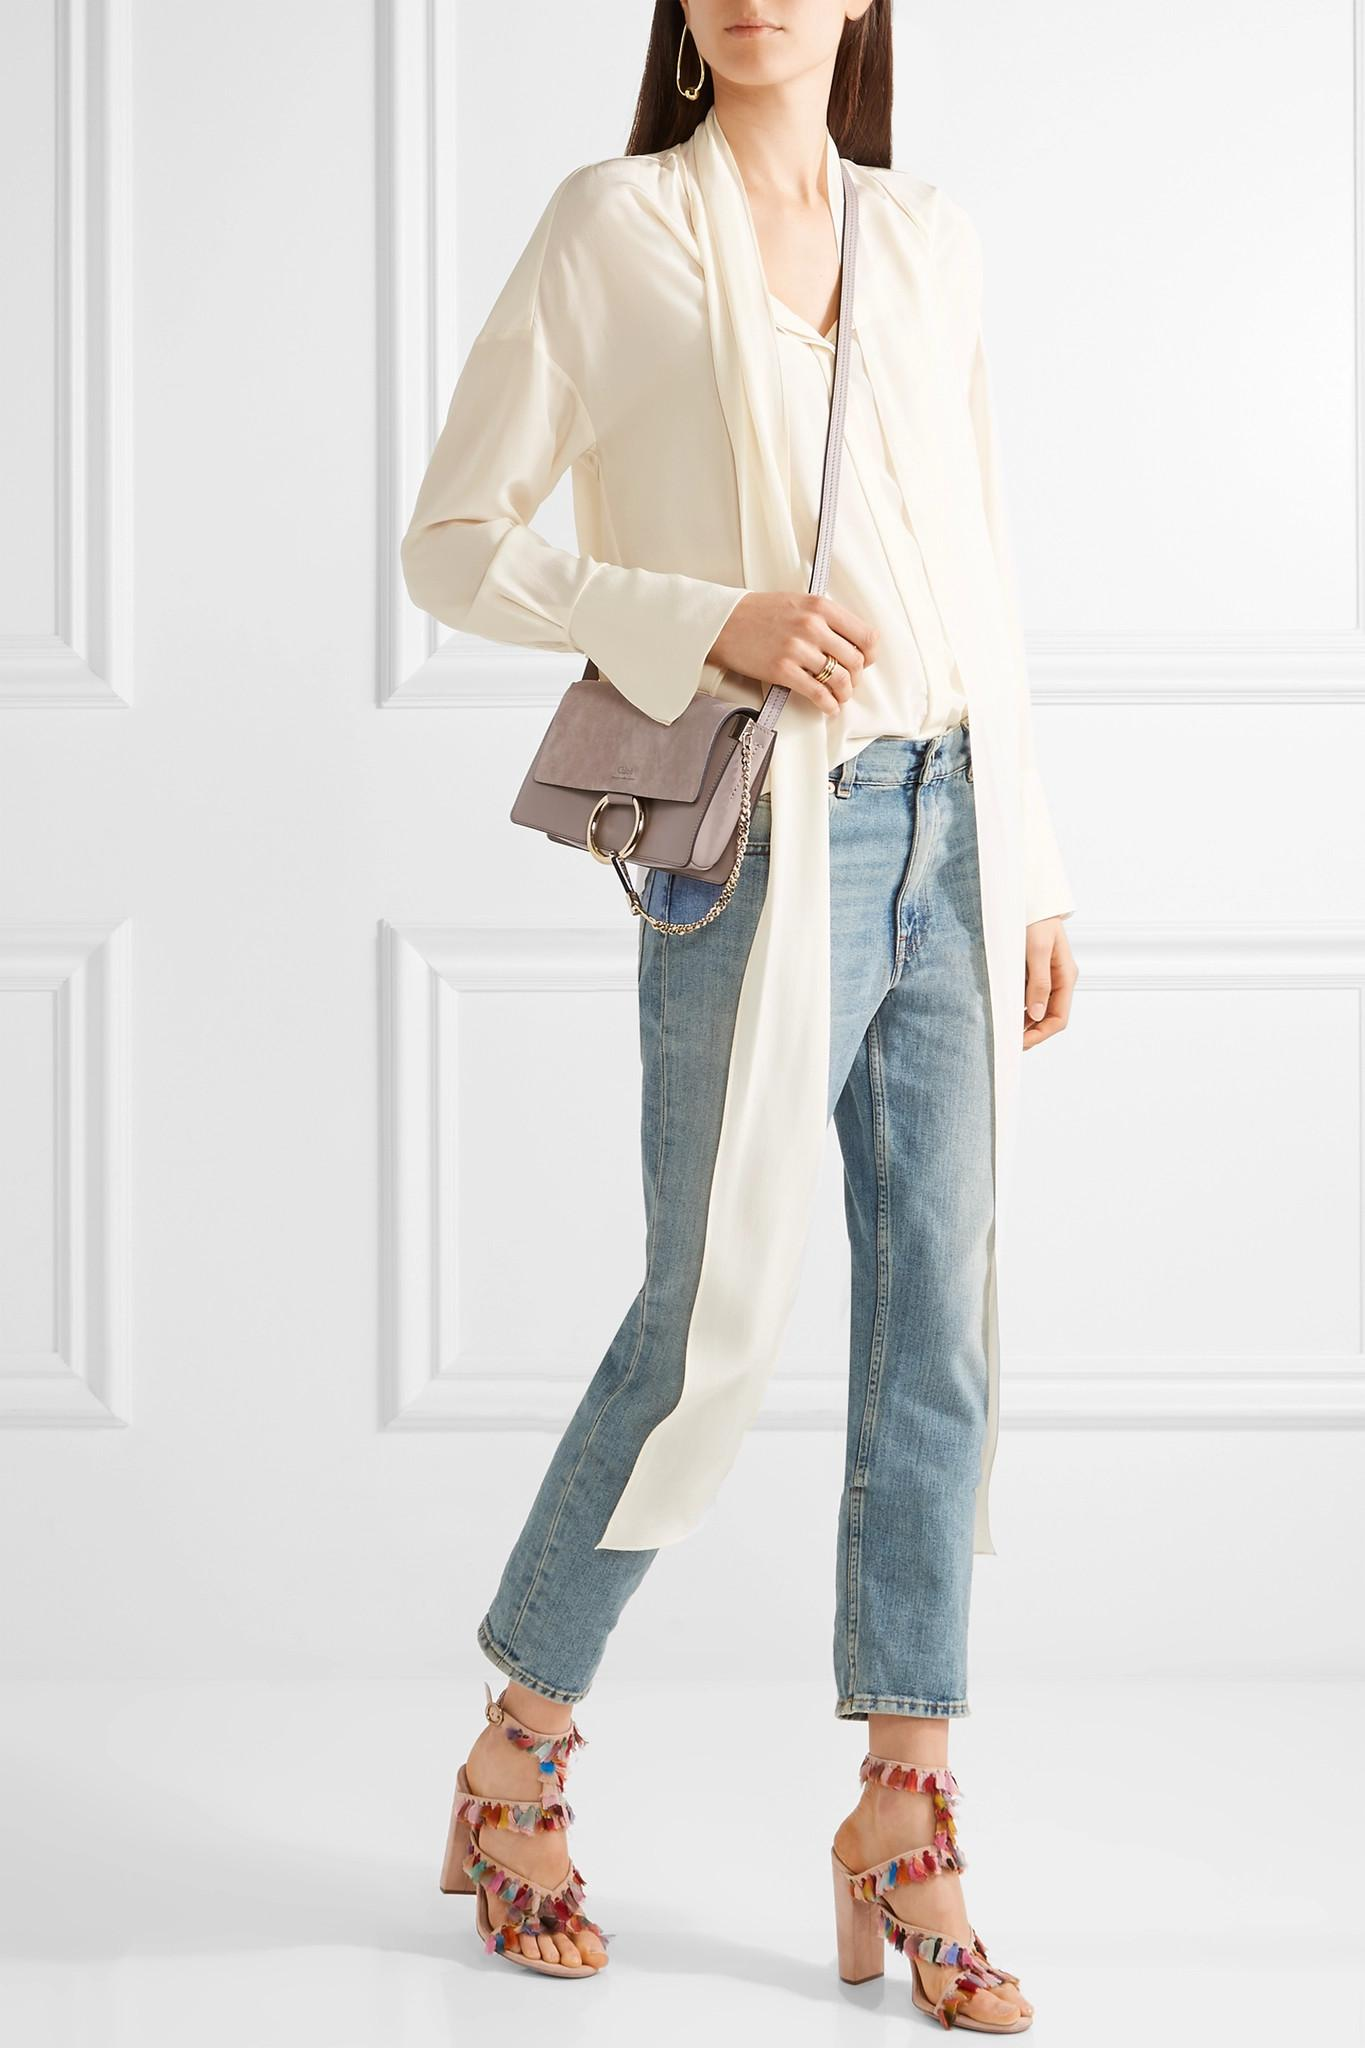 Lyst - Chloé Faye Small Leather And Suede Shoulder Bag in Gray 70208f206